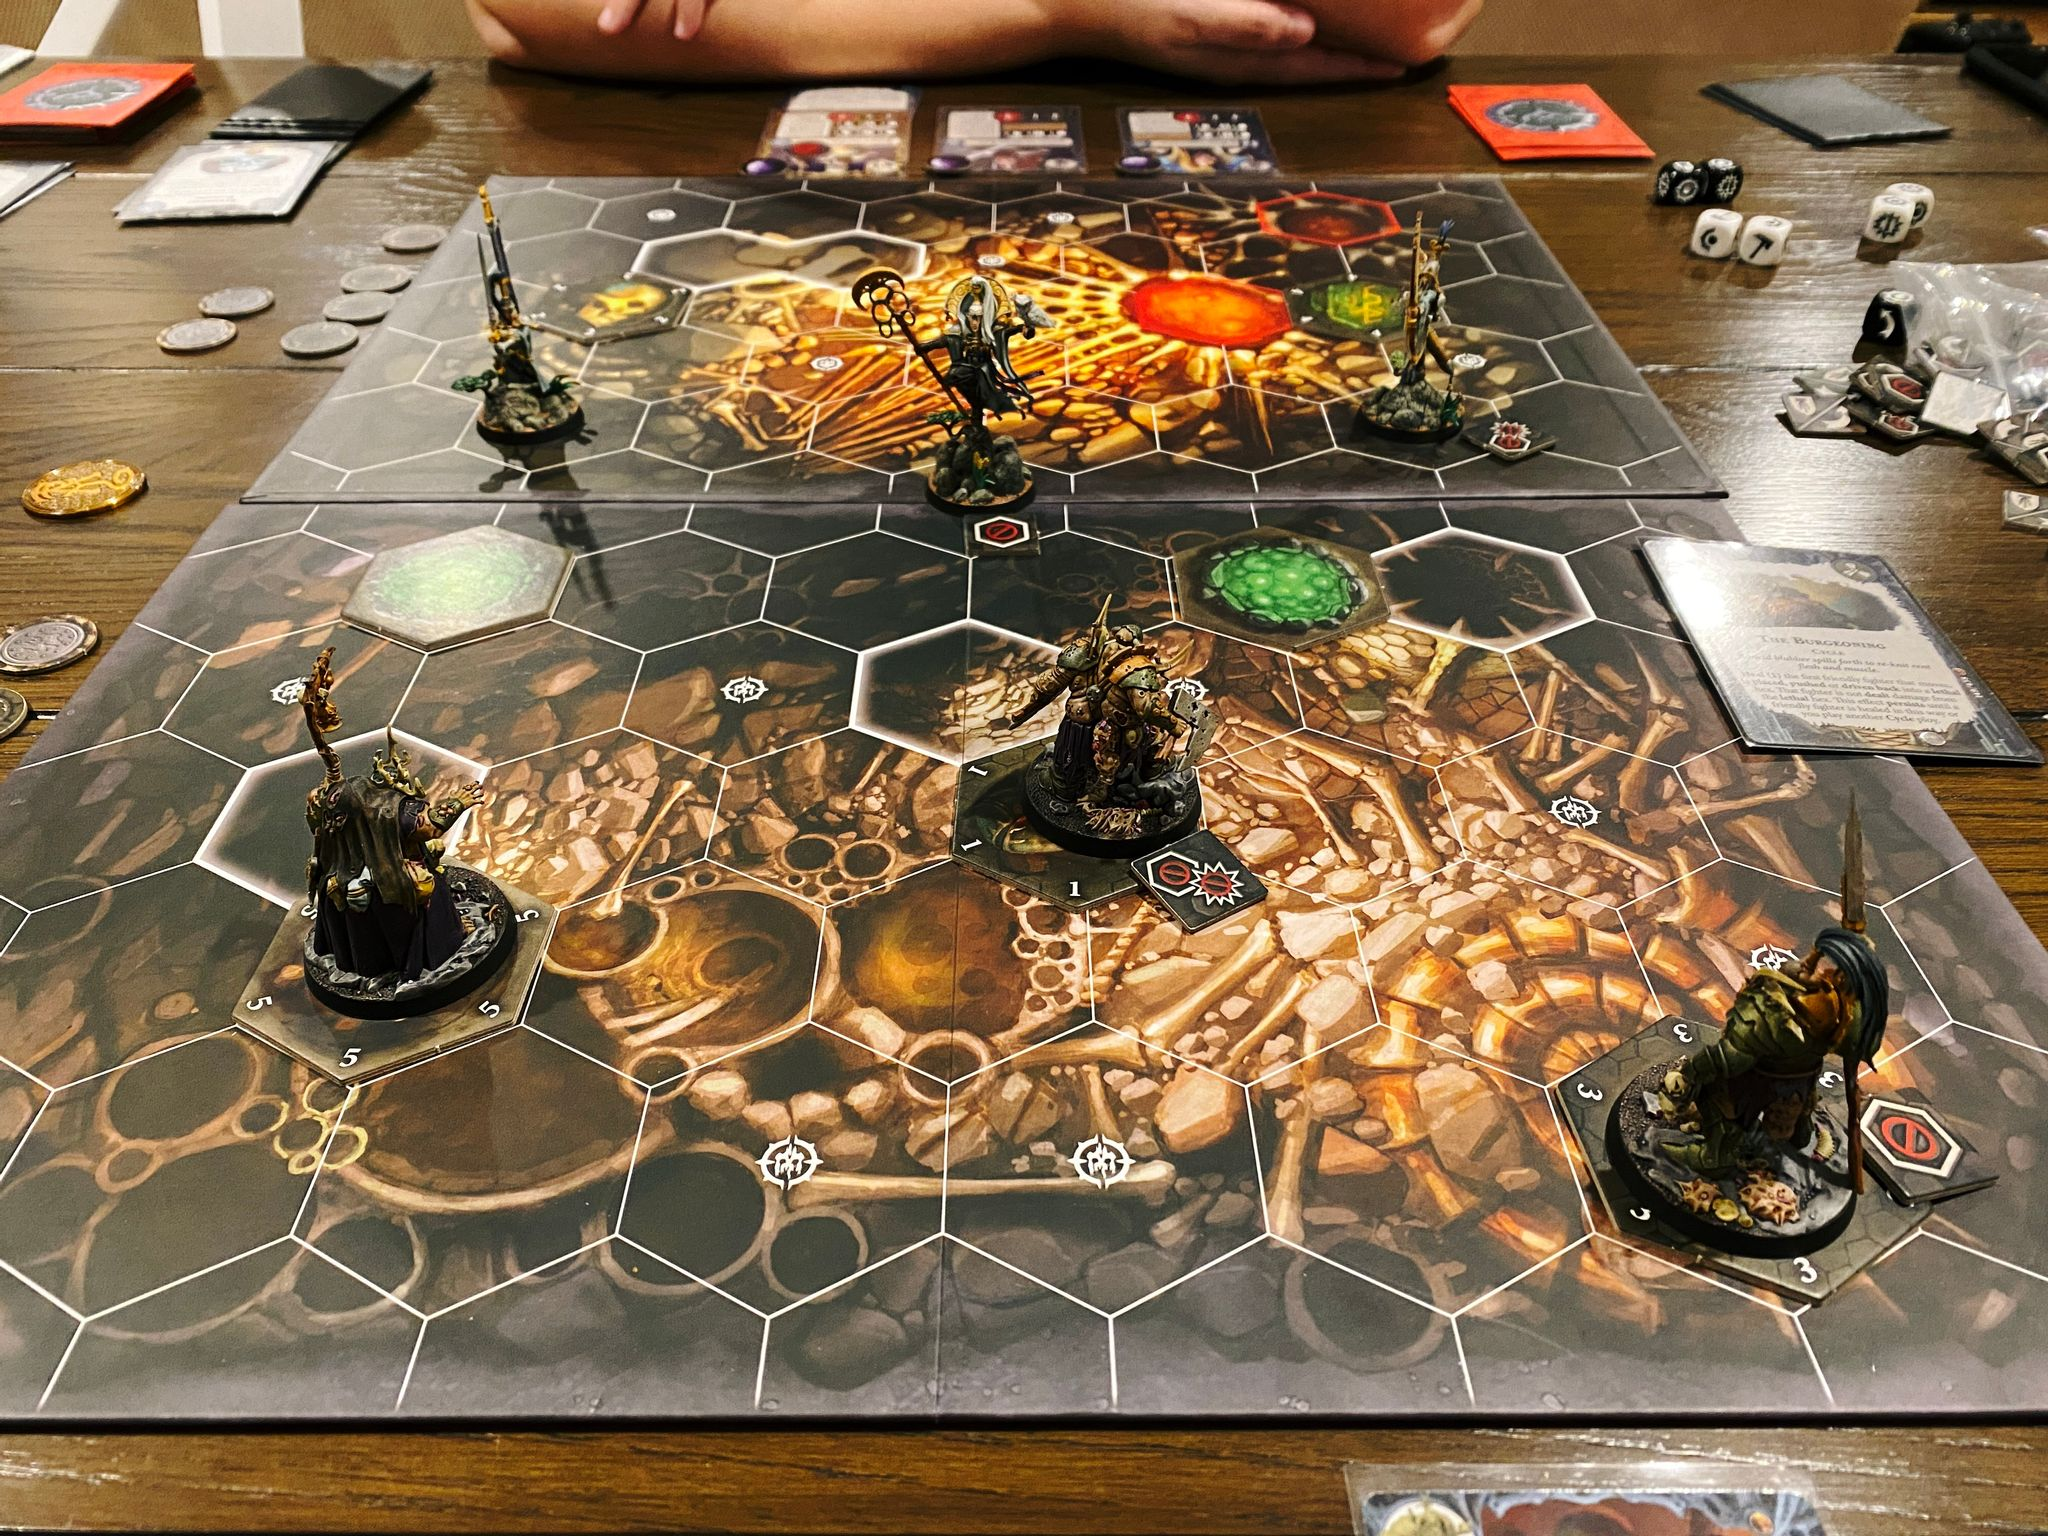 A photo of a Warhammer Underworlds game board. The board design is the inside of a cave and has hexagonal tiles on it. The three miniatures on my side of the table are bulky and slow-moving, and the three on Kristina's side are lithe and elegant aelves.